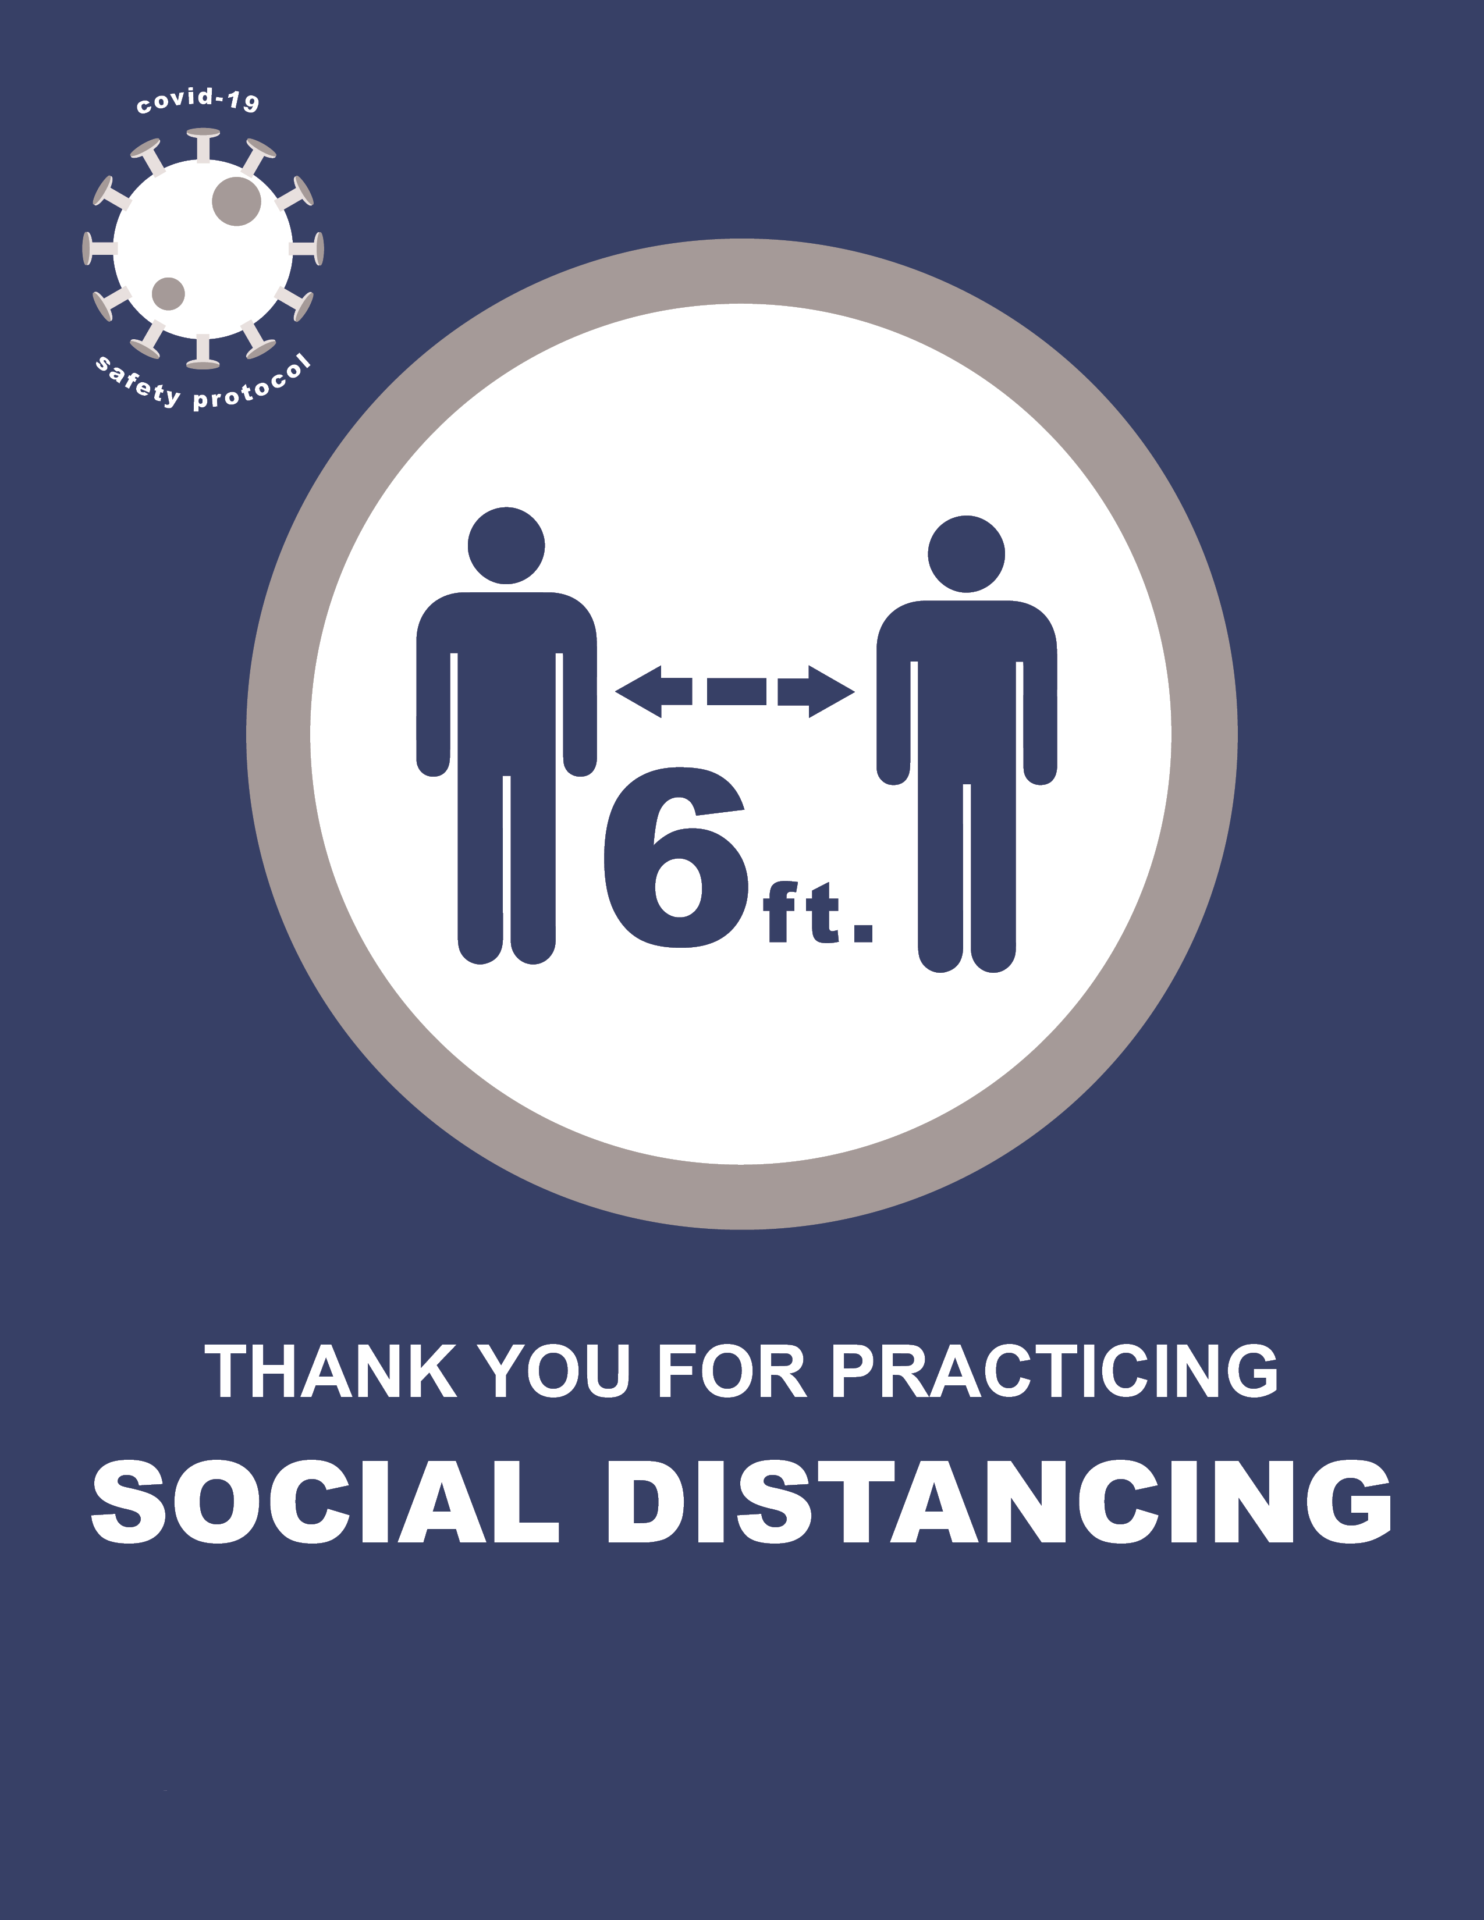 COVID-19 Signage For Social Distancing